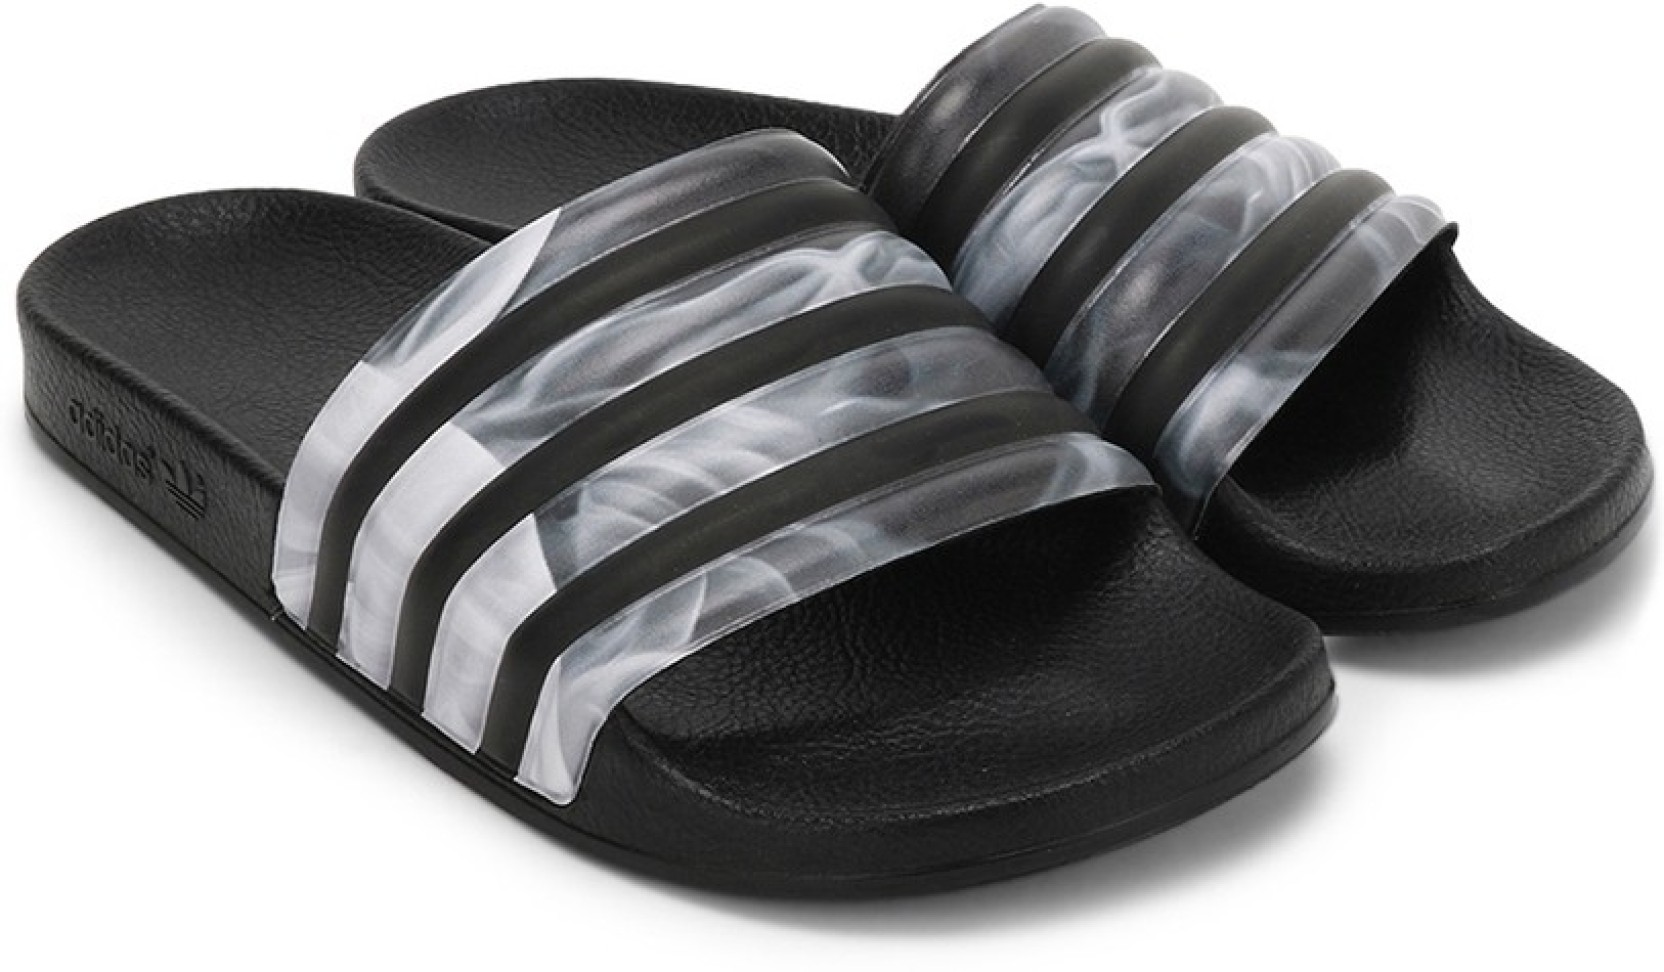 ADIDAS ADILETTE Women Slippers - Buy Black Color ADIDAS ADILETTE ... a91d6036ae